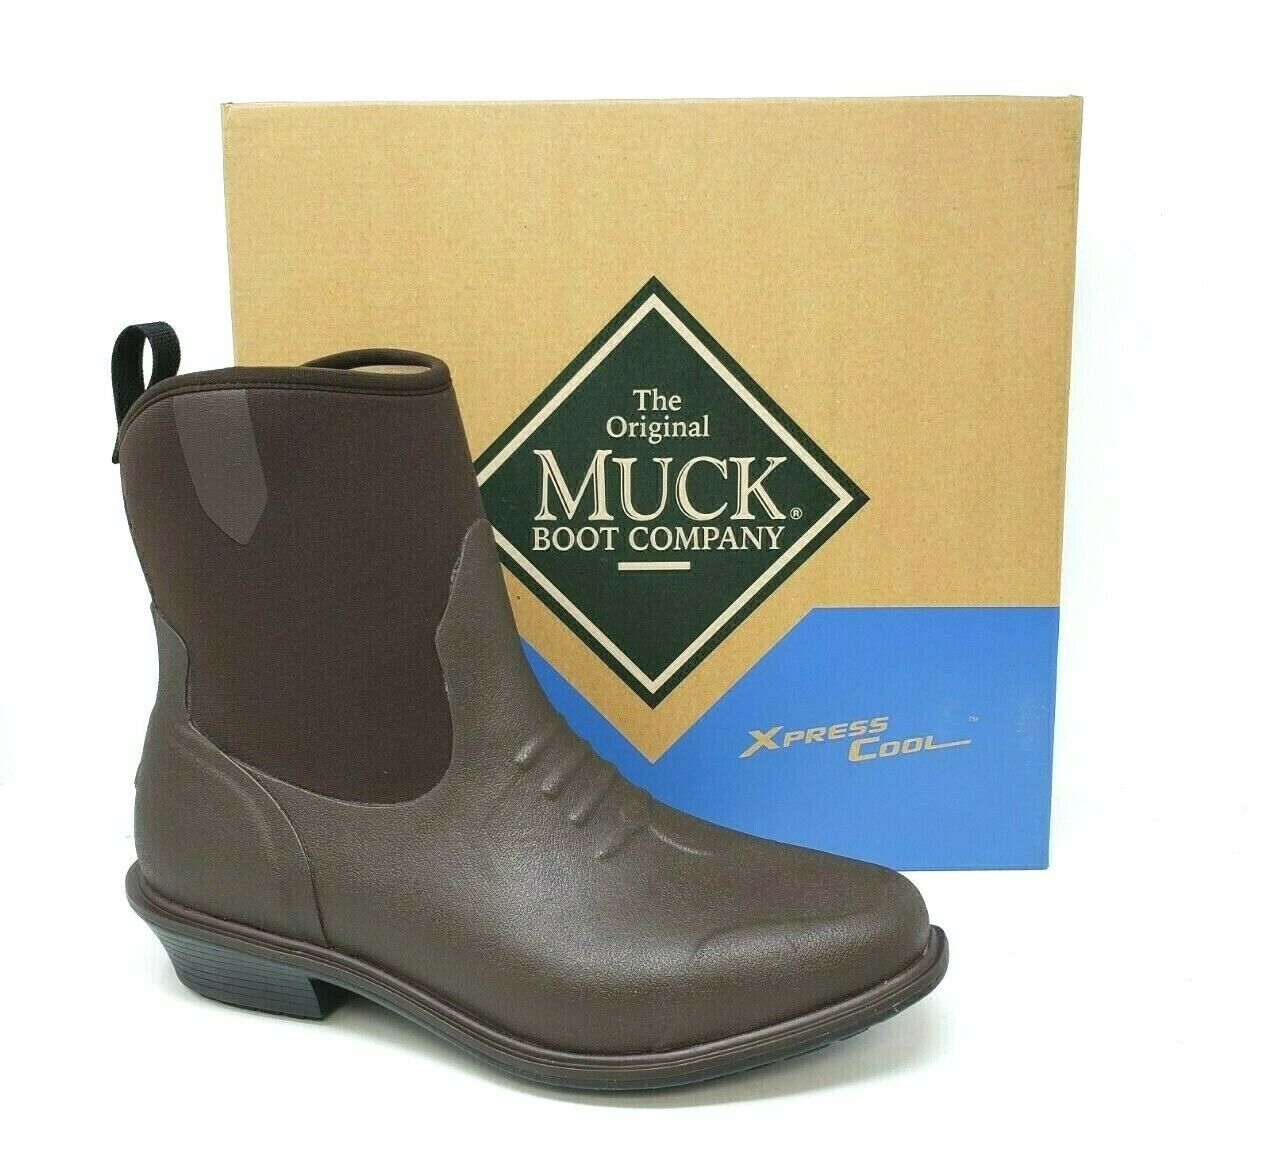 New  Women's MUCK Riding Boot JAW-900 - Brown W73 m